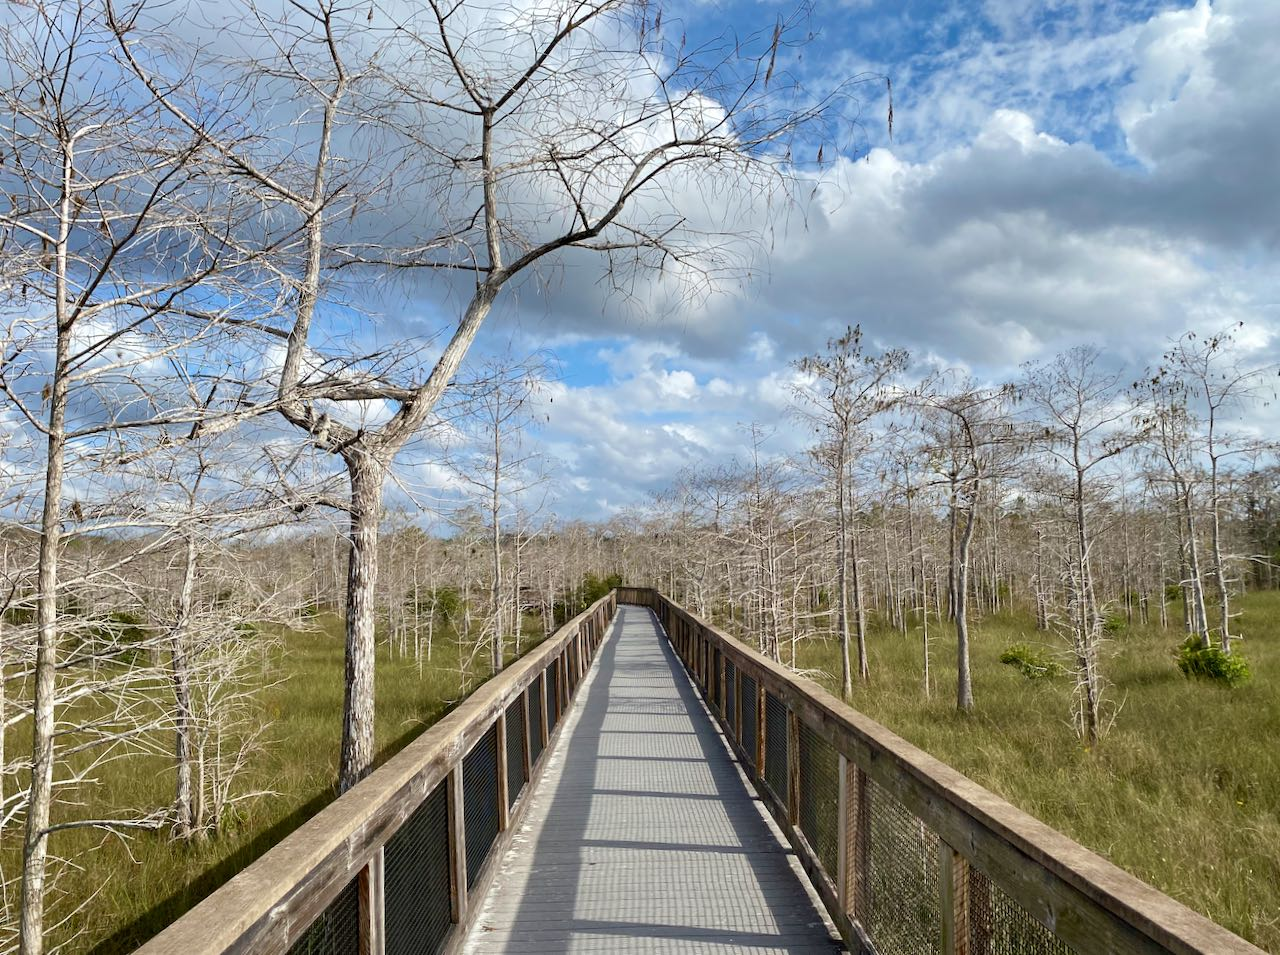 Kirby Storter Roadside Park and Boardwalk Attractions and Places to Stop Along the Tamiami Trail/U.S. Highway 41